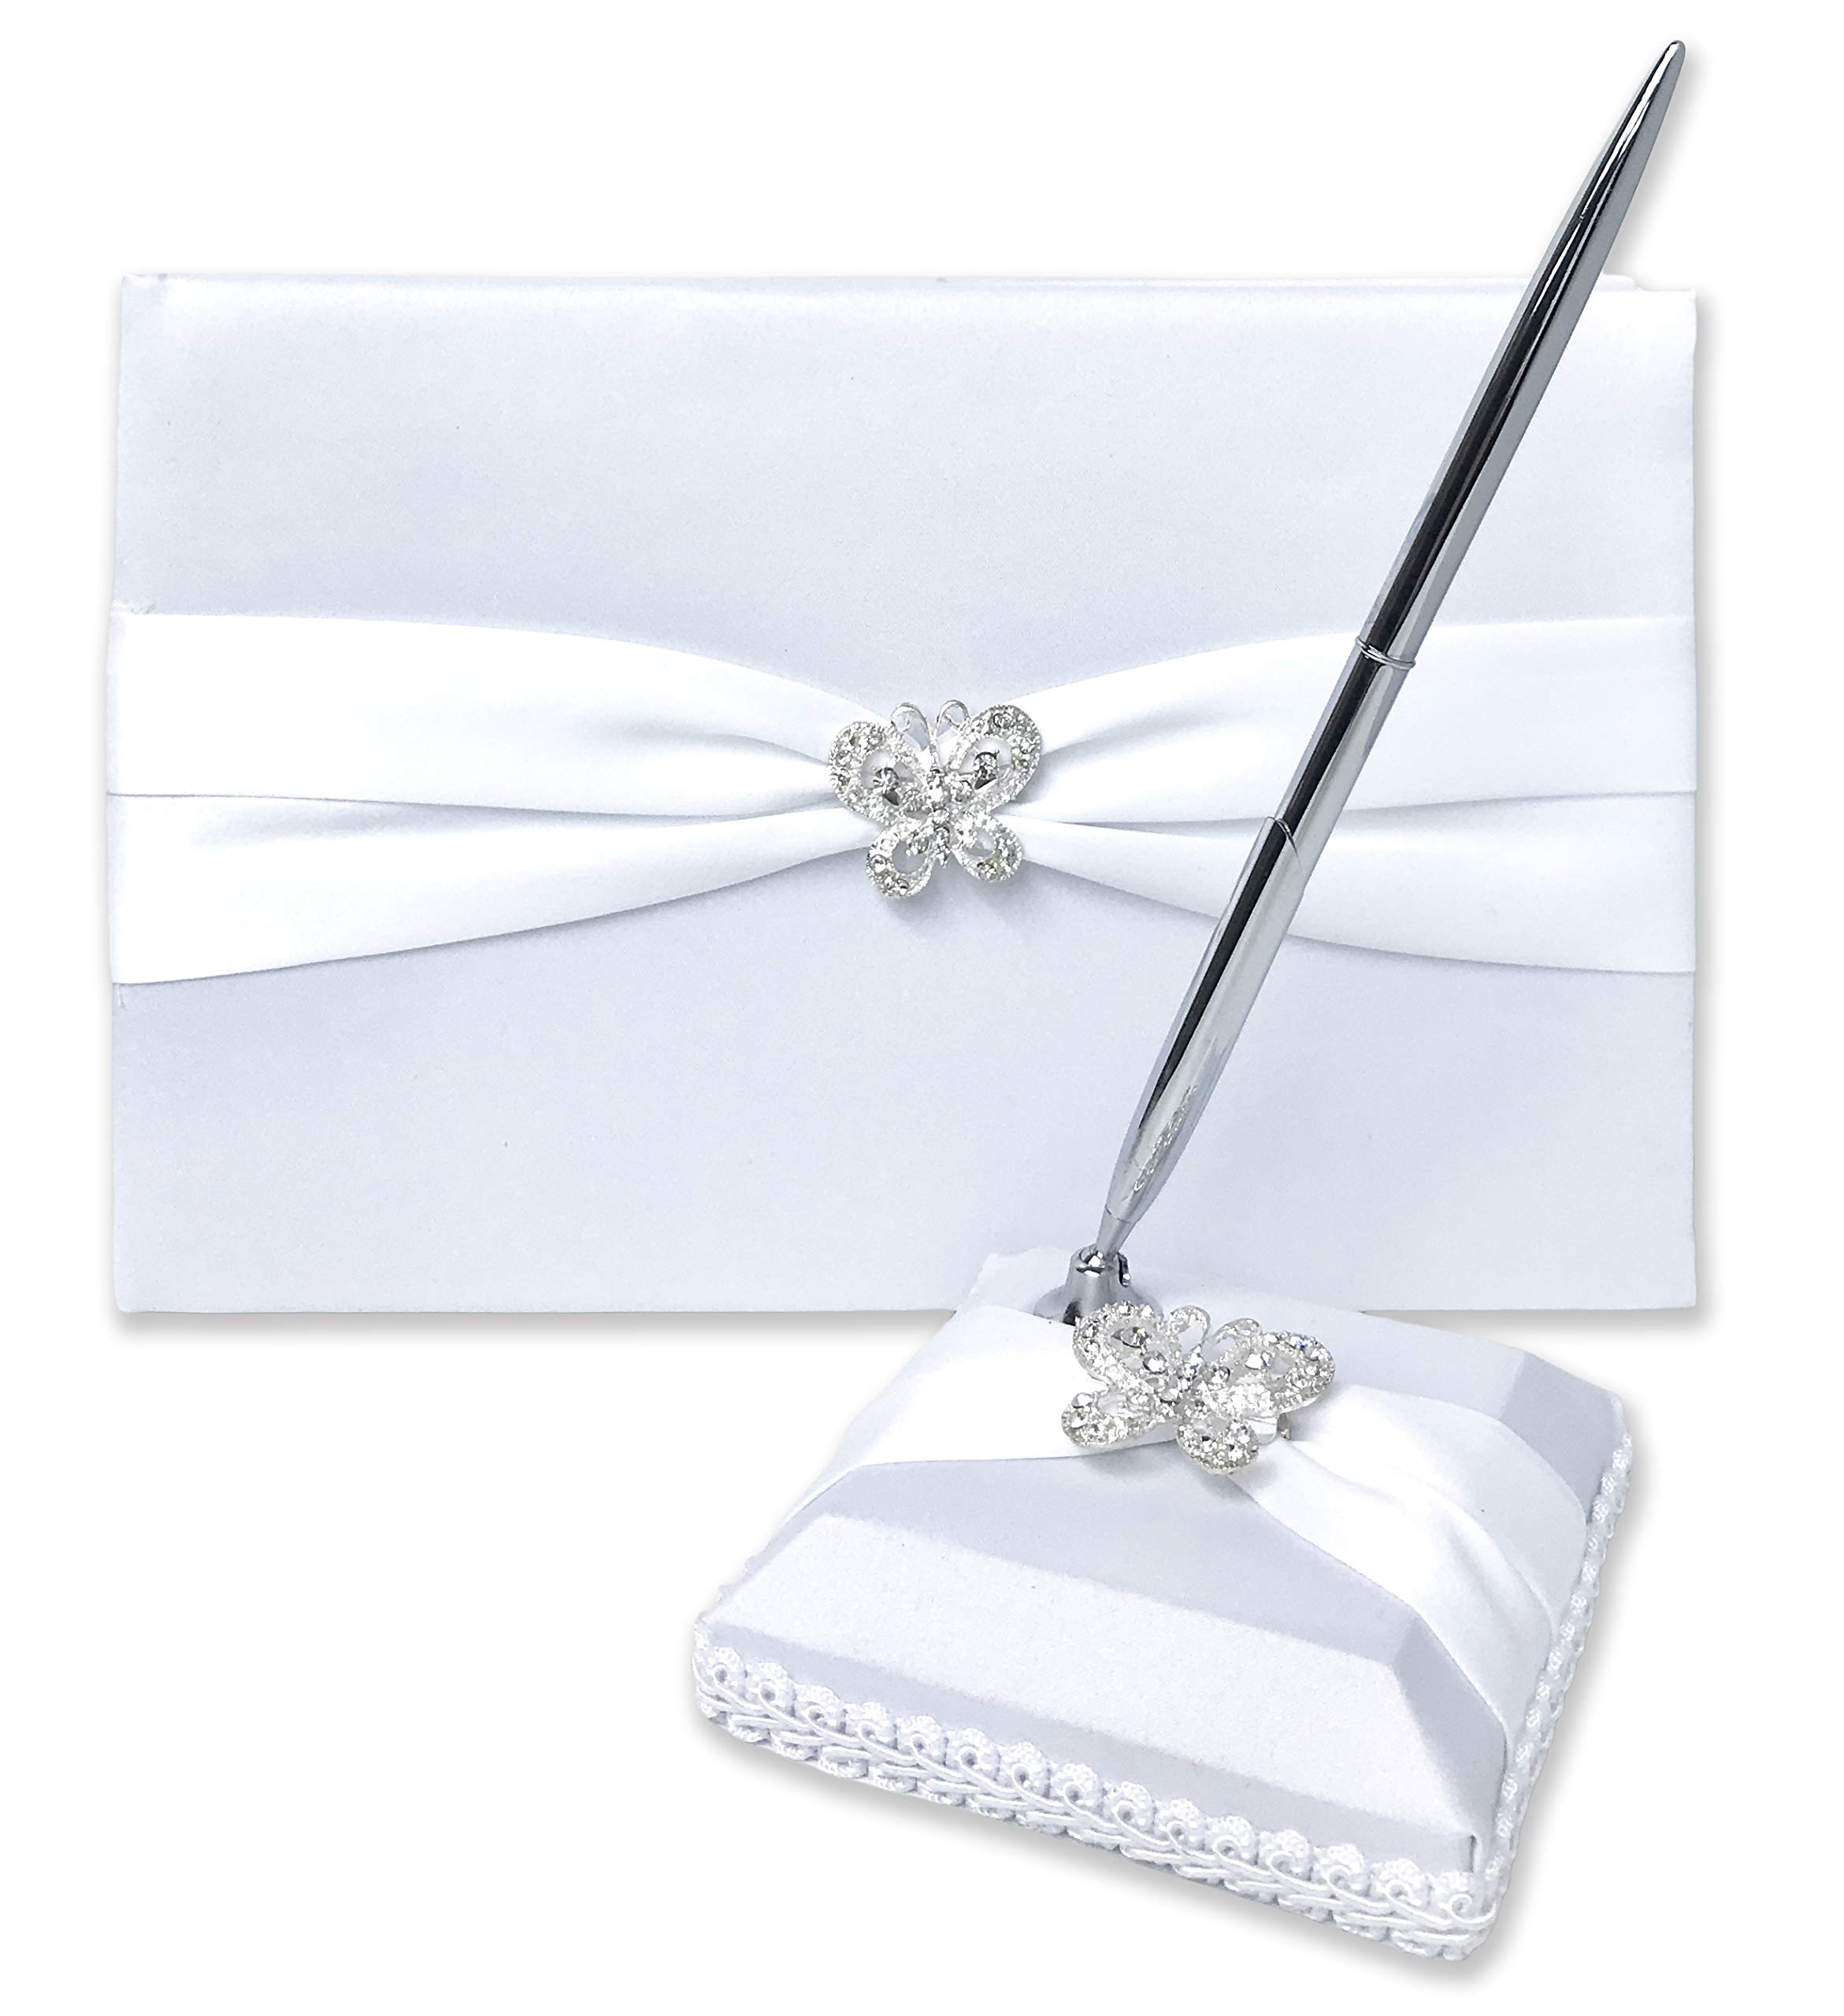 Wedding Guest Book and Pen Set   Guest Book Wedding Set with Lined Pages for Sign in   Butterfly Rhinestone and White Satin with Classic Touch